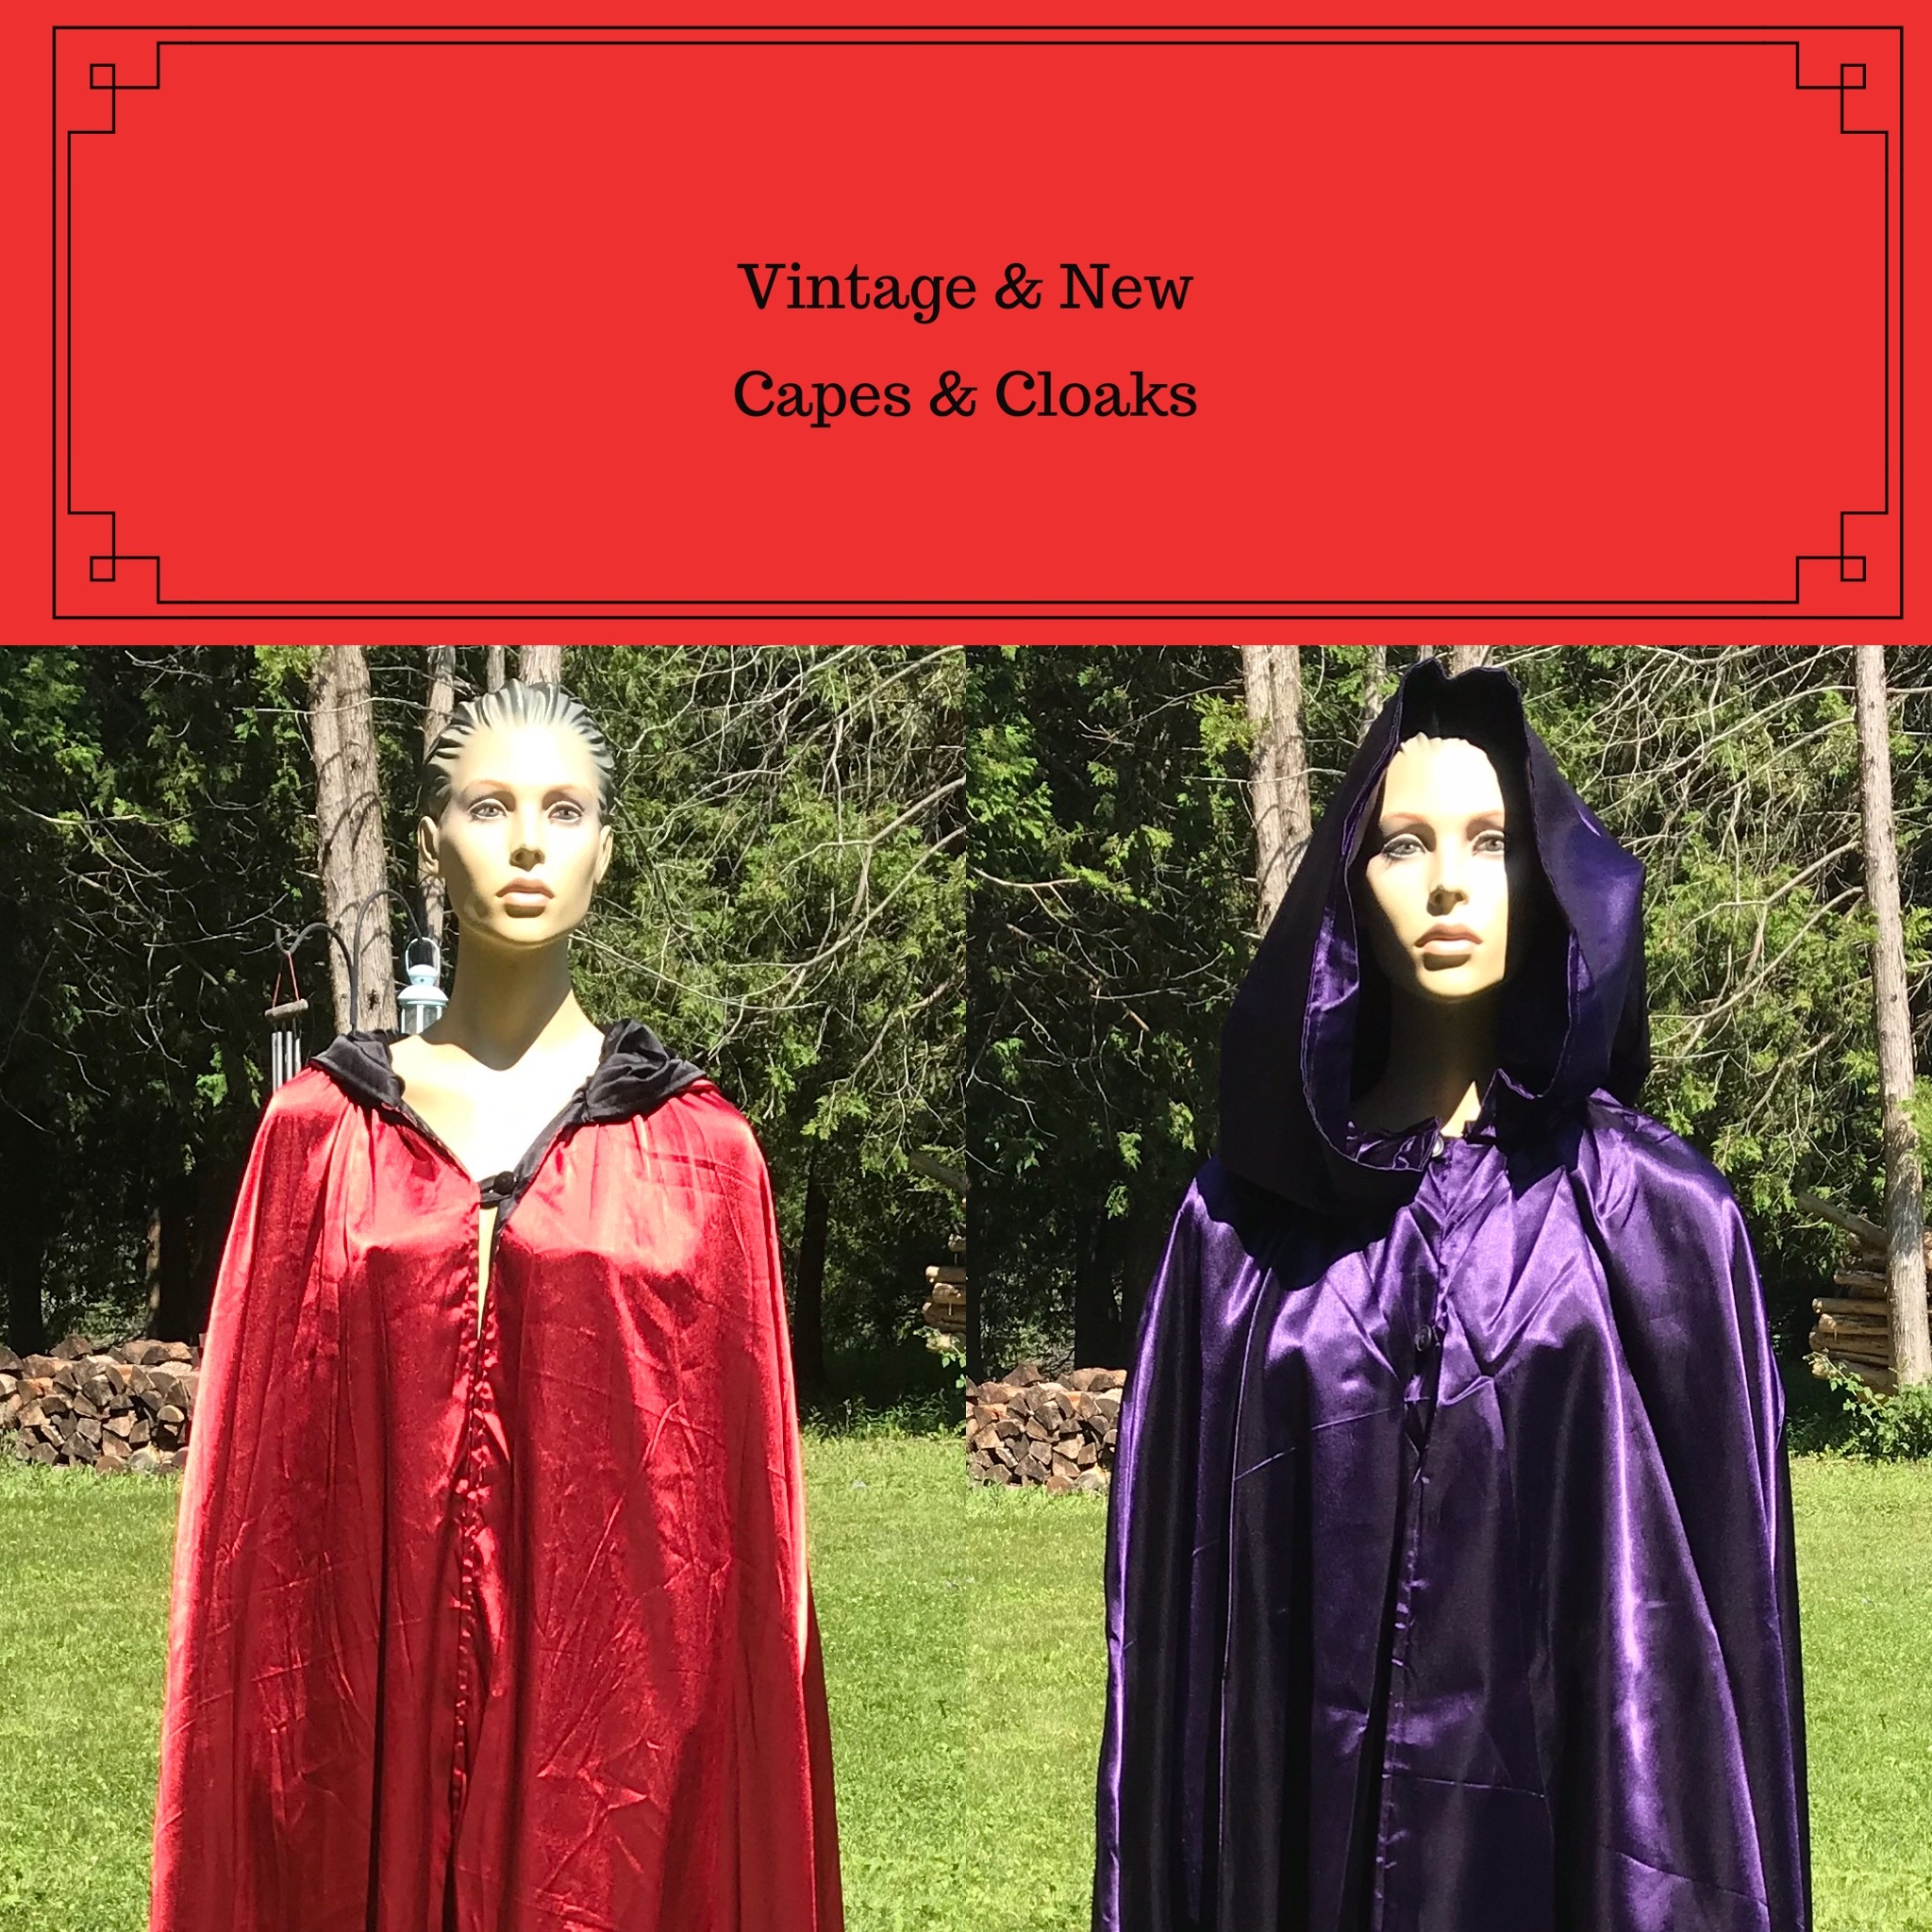 Capes & Cloaks